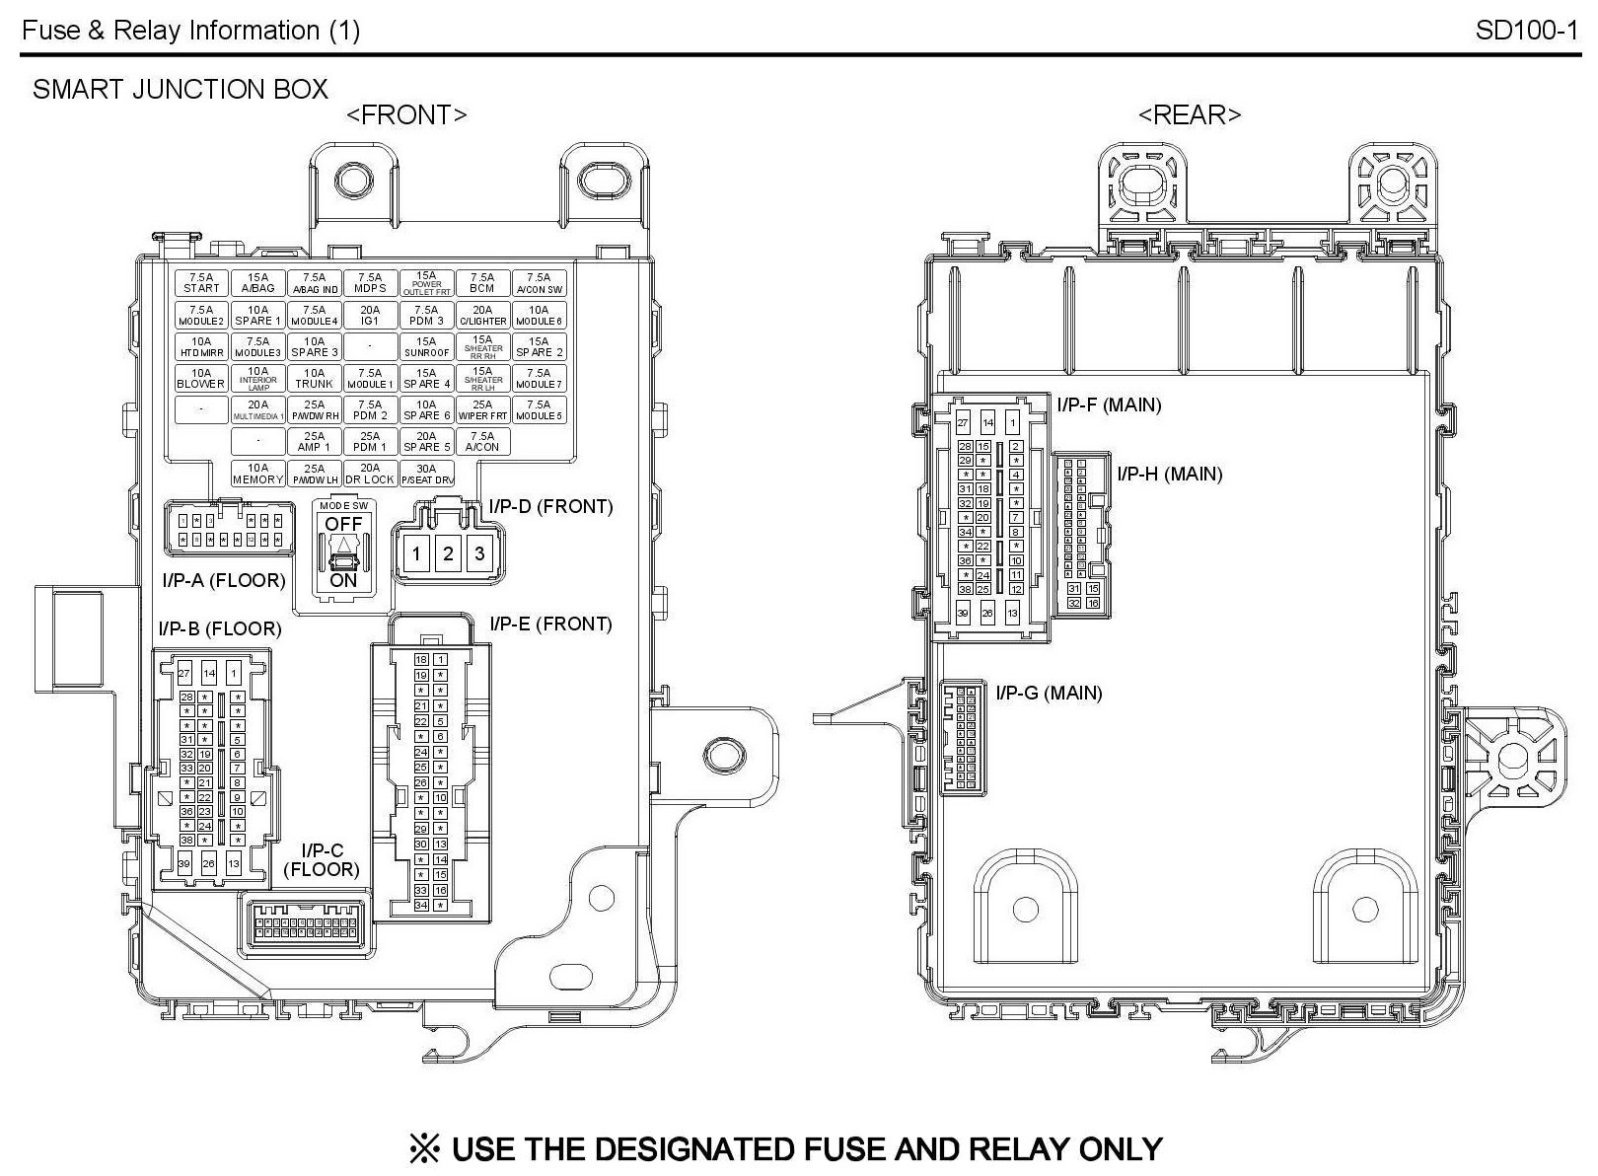 hight resolution of 2012 hyundai accent fuse box wiring diagram schematics 2012 hyundai elantra fuse box diagram 2012 hyundai accent fuse diagram